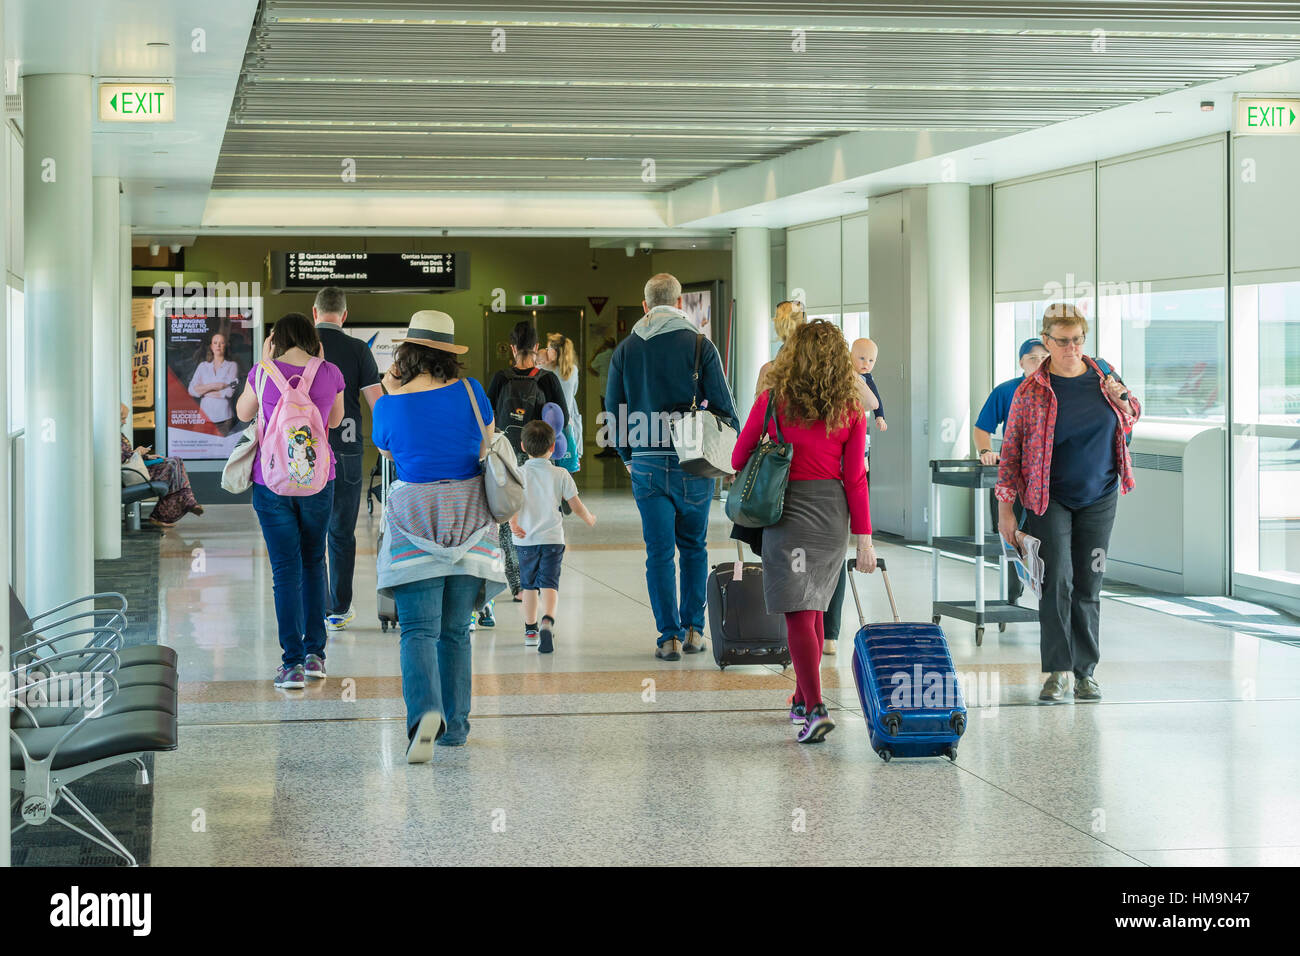 Travellers at airport - Stock Image